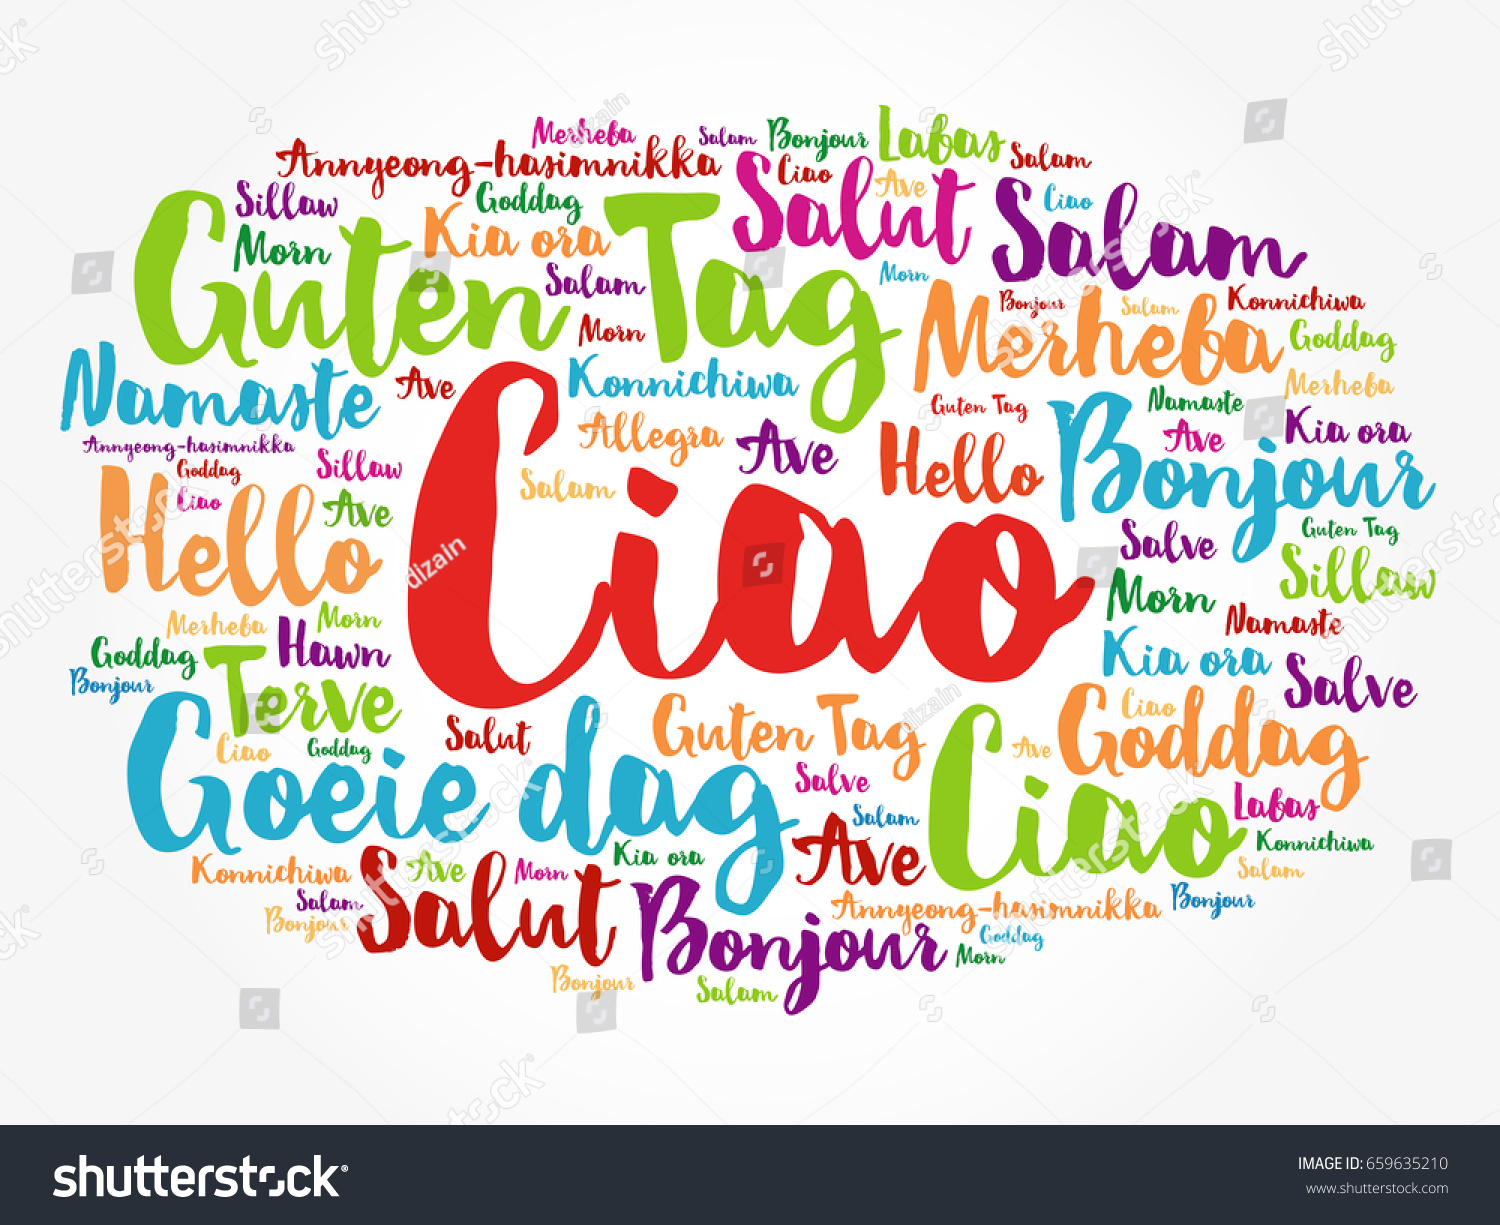 Ciao hello greeting italian word cloud stock vector 659635210 ciao hello greeting in italian word cloud in different languages of the world kristyandbryce Gallery